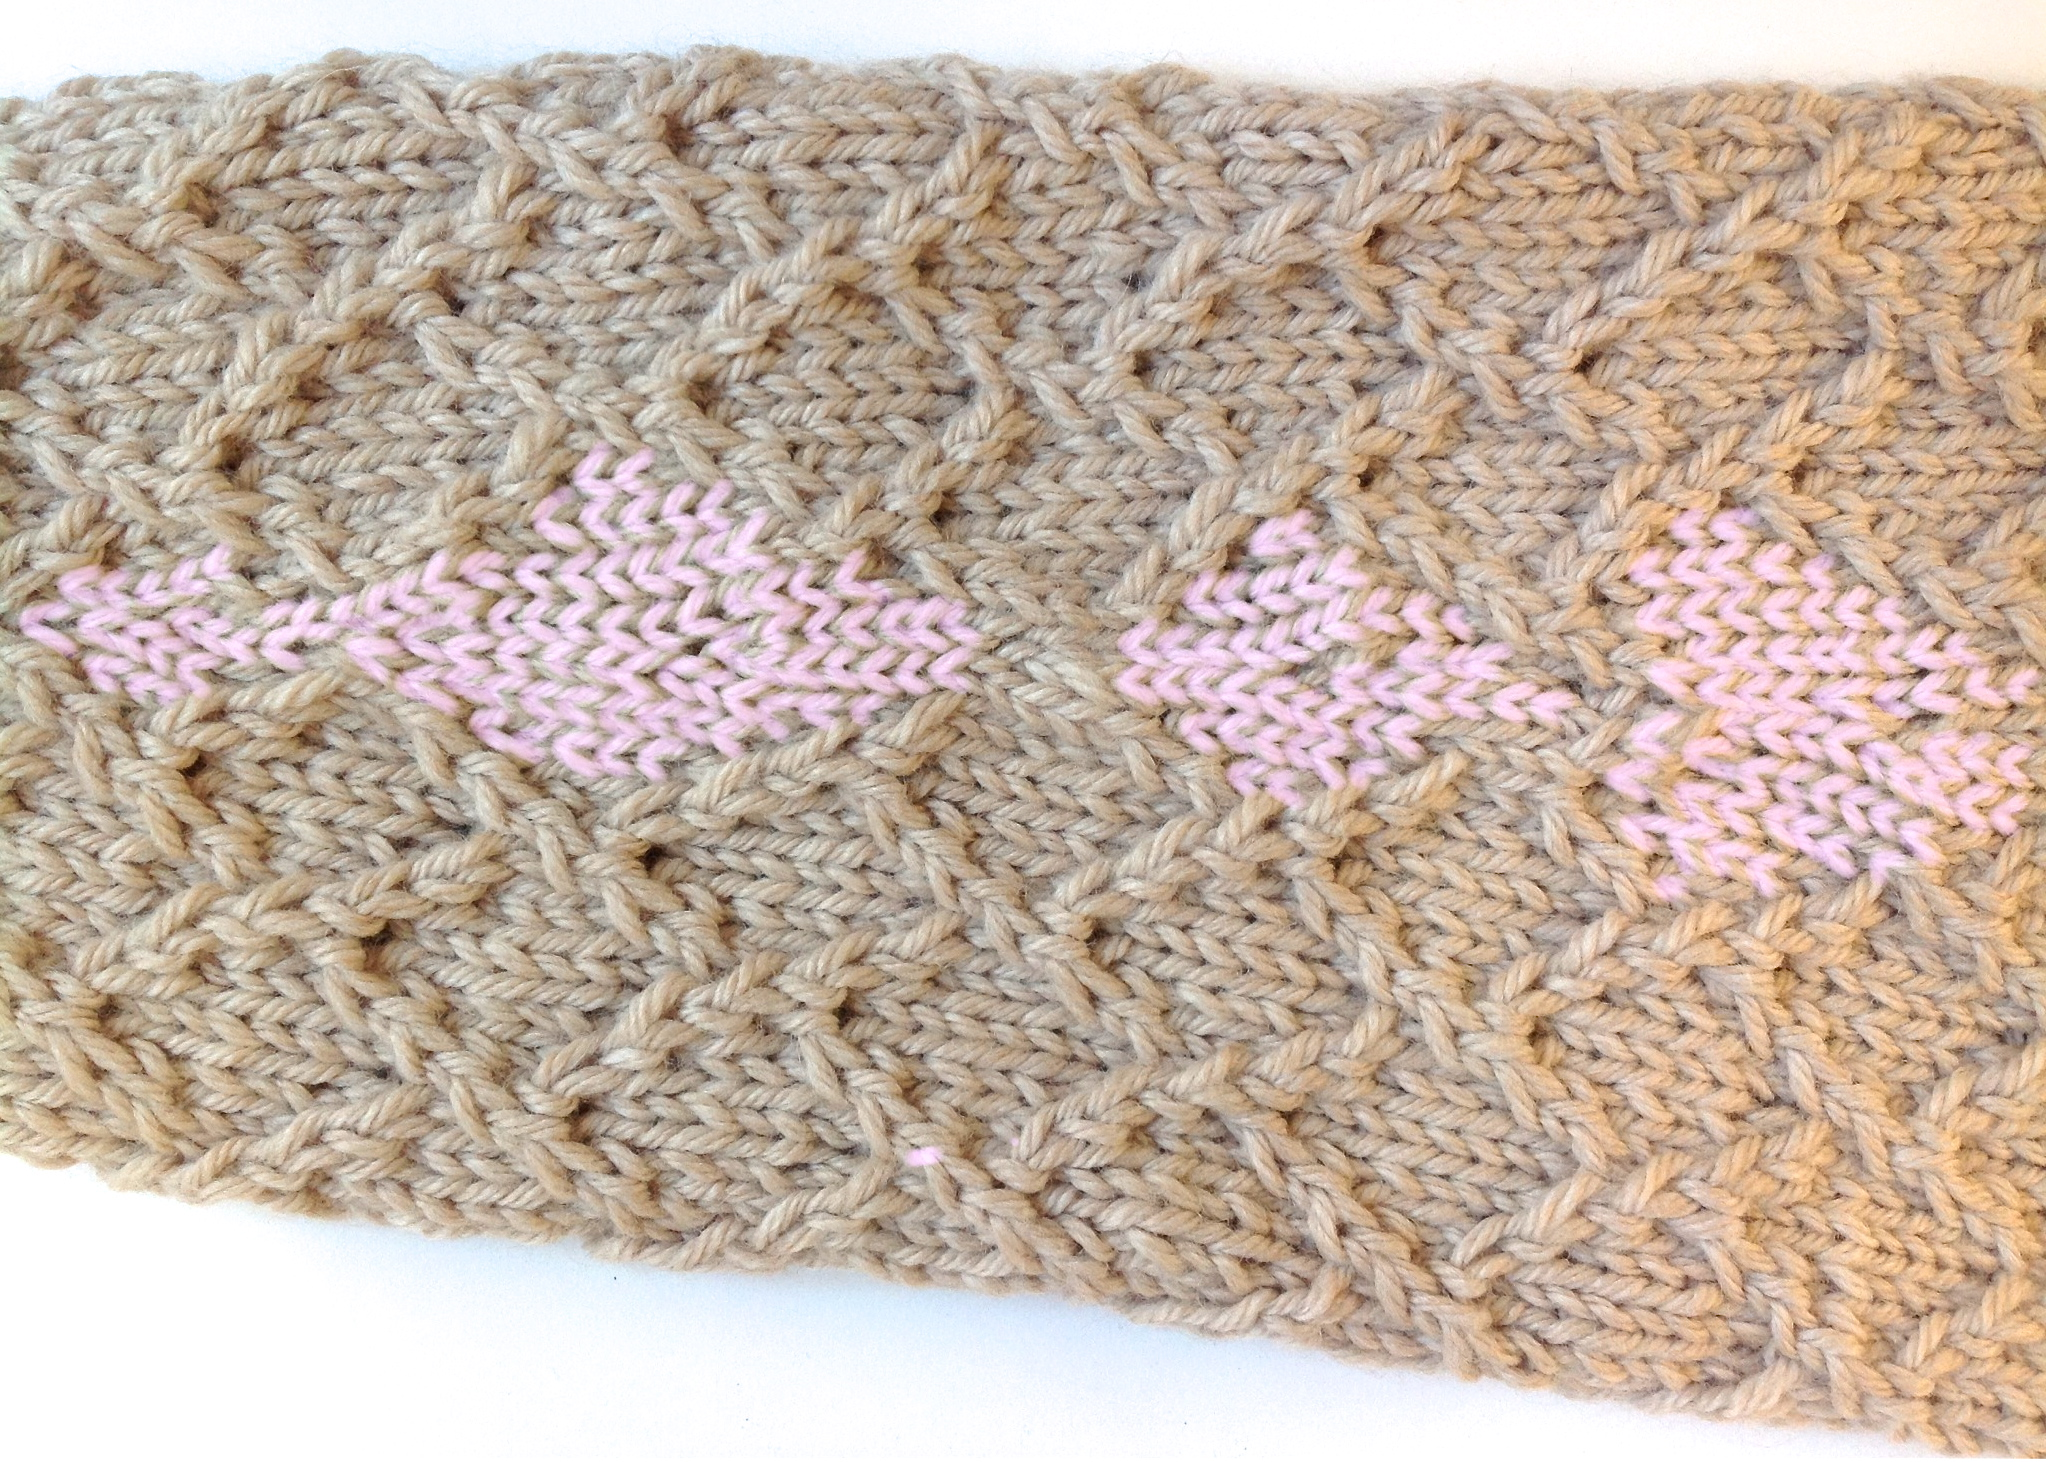 Knitting Increase Stitch In Middle Of Row : knitting   berroco design studio